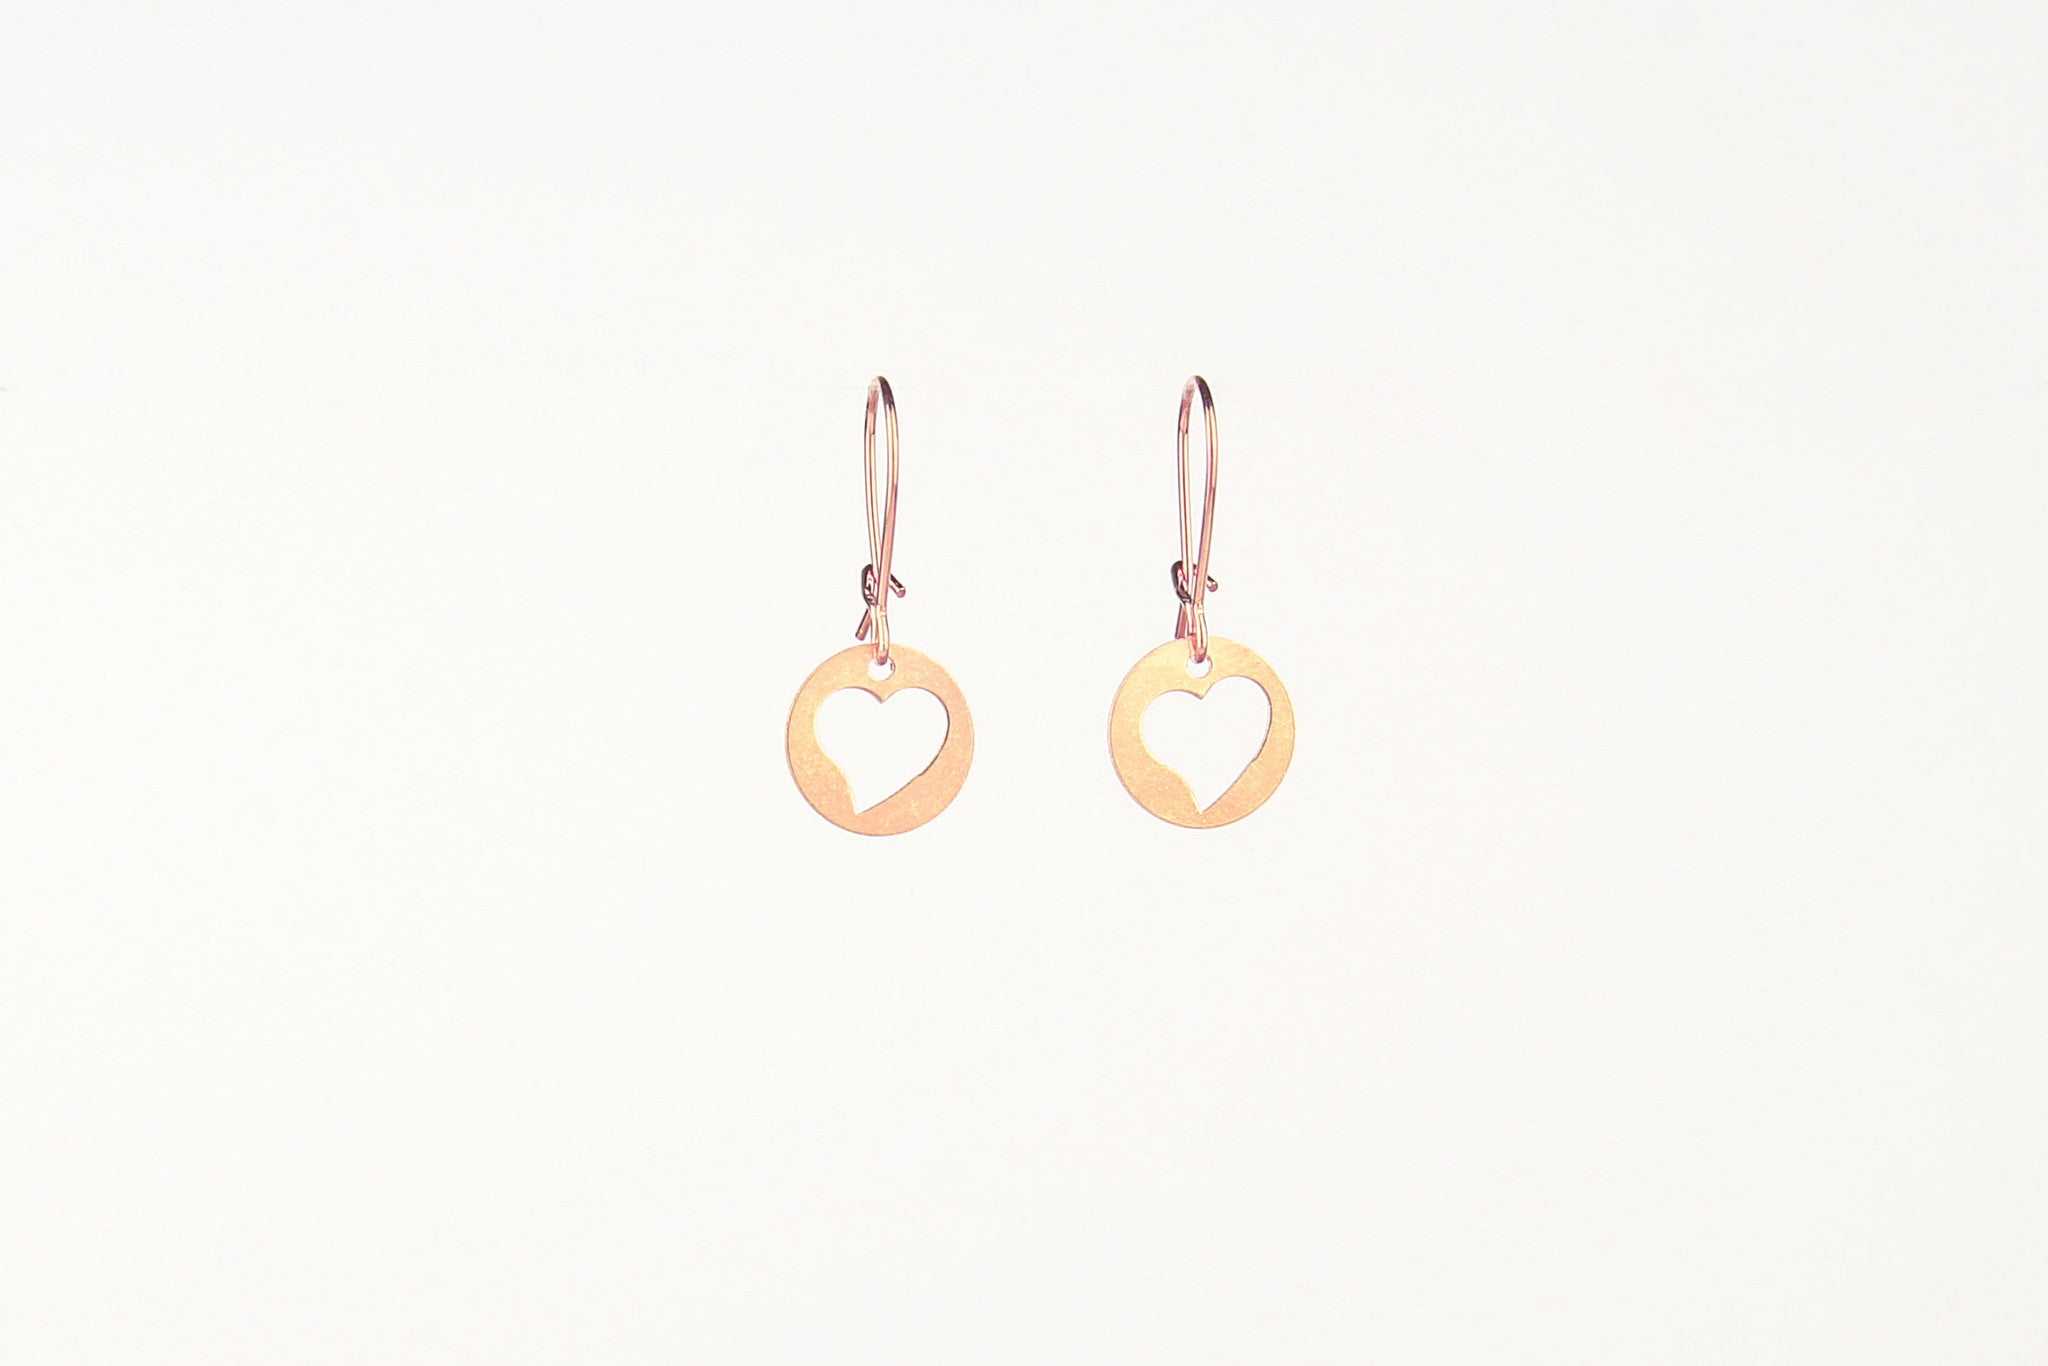 ....Ohrringe MY LOVE DISC Sterling Silber rosé vergoldet..Earrings MY LOVE DISC 925 Sterling Silver rose gold plated....